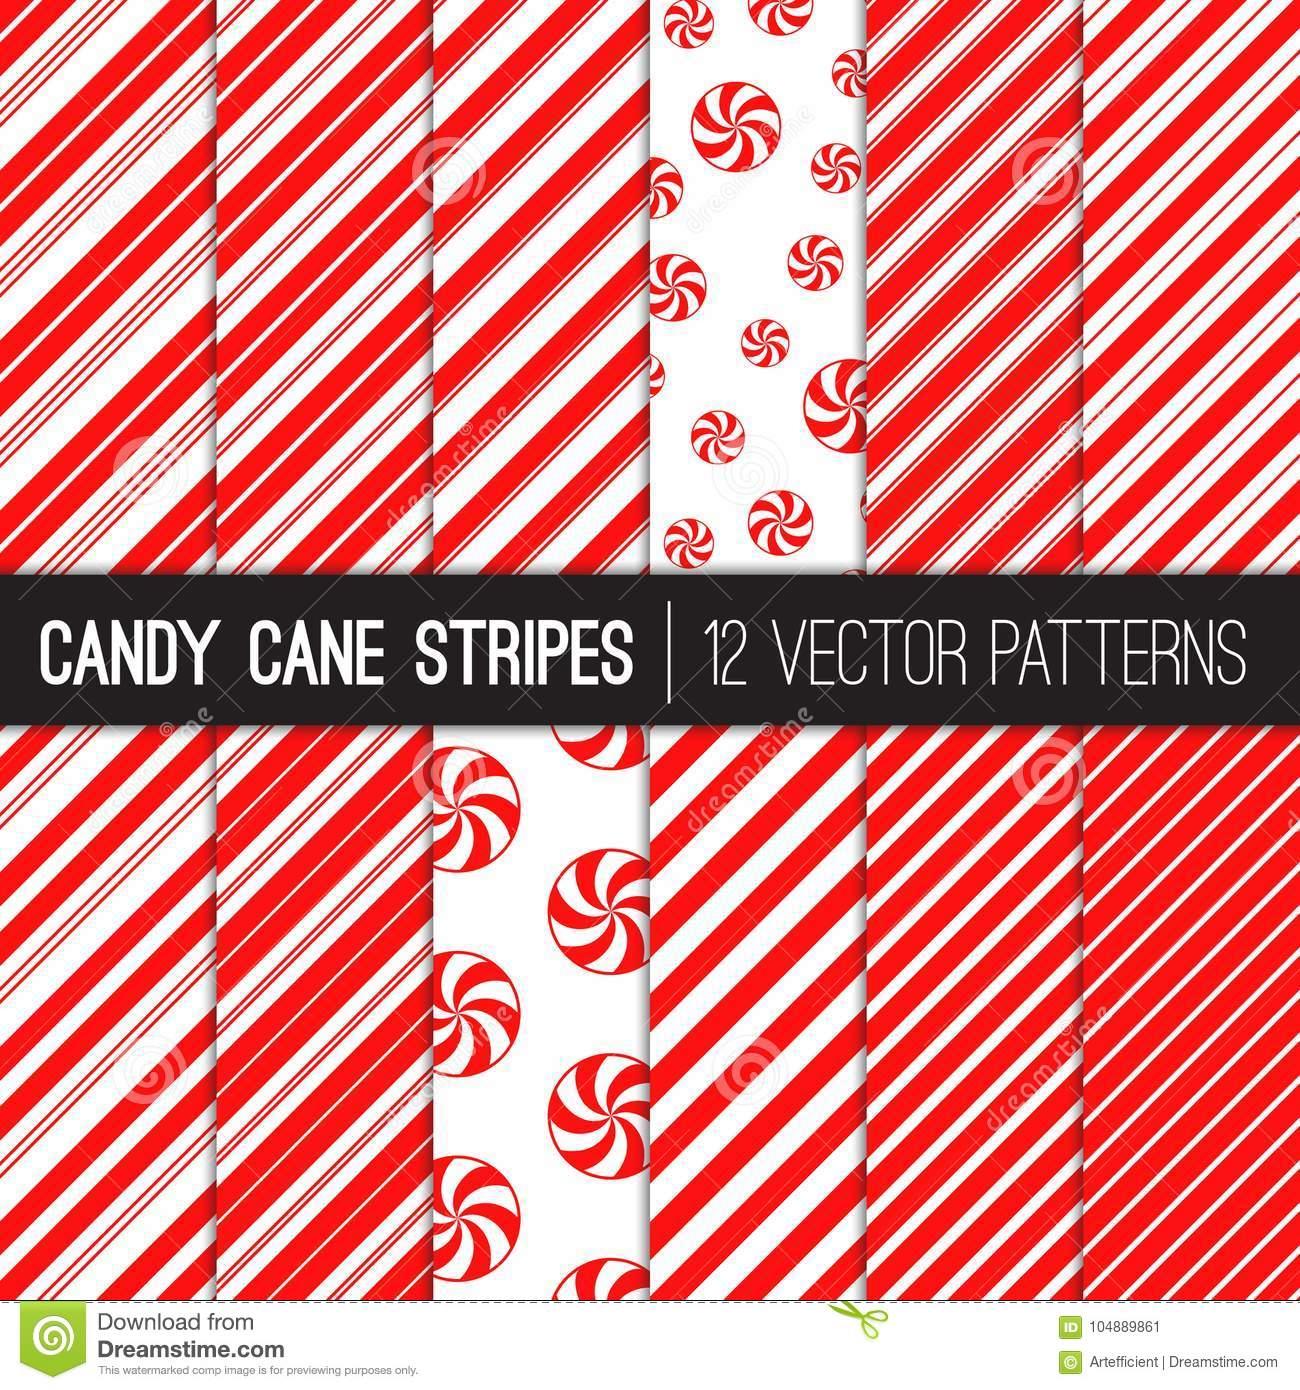 Candy Cane Stripes And Peppermints Vector Patterns In Red